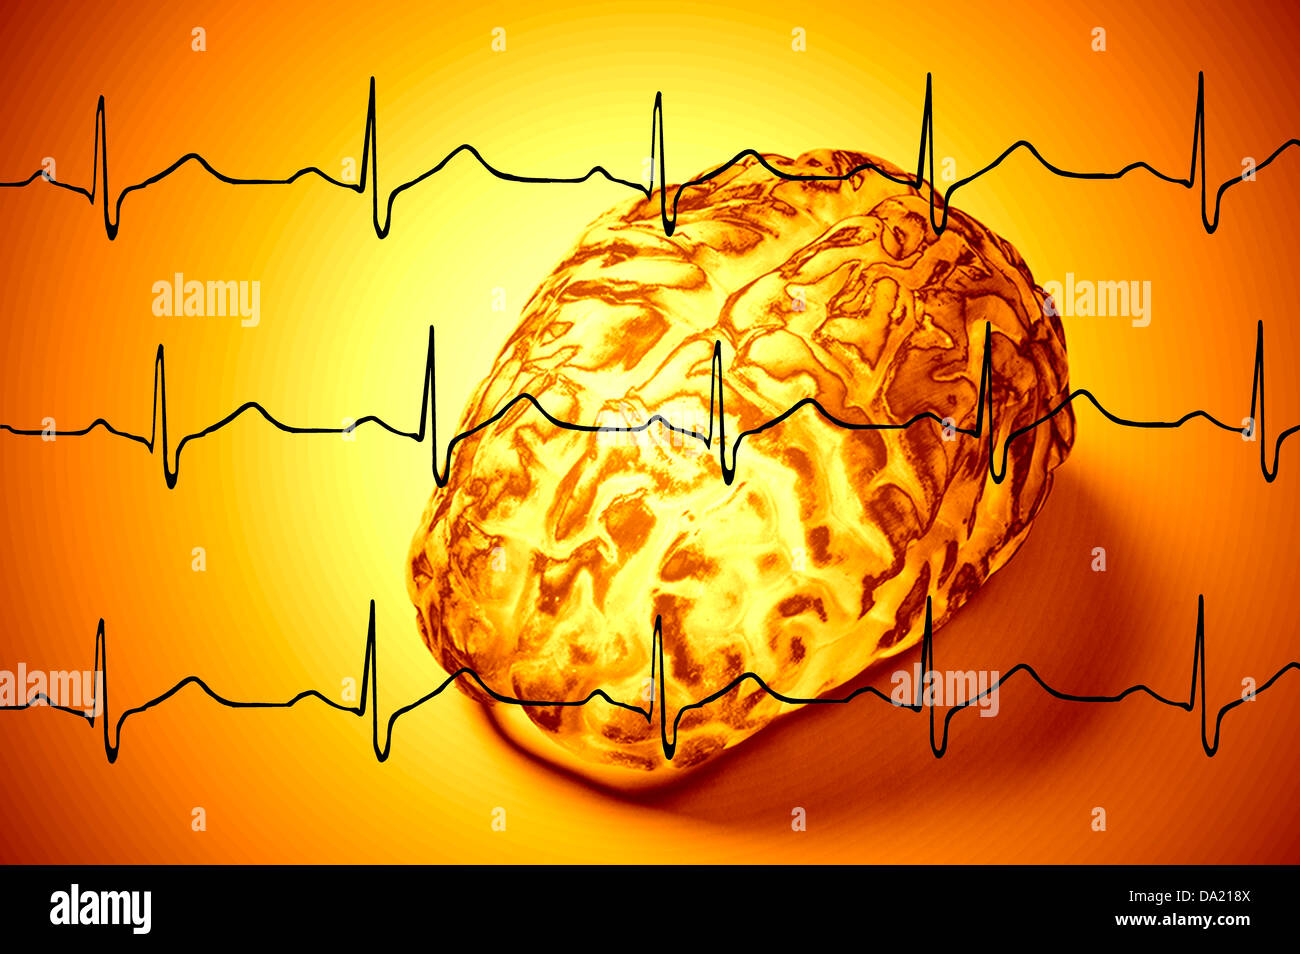 computer generated brain on EKG background concept - Stock Image